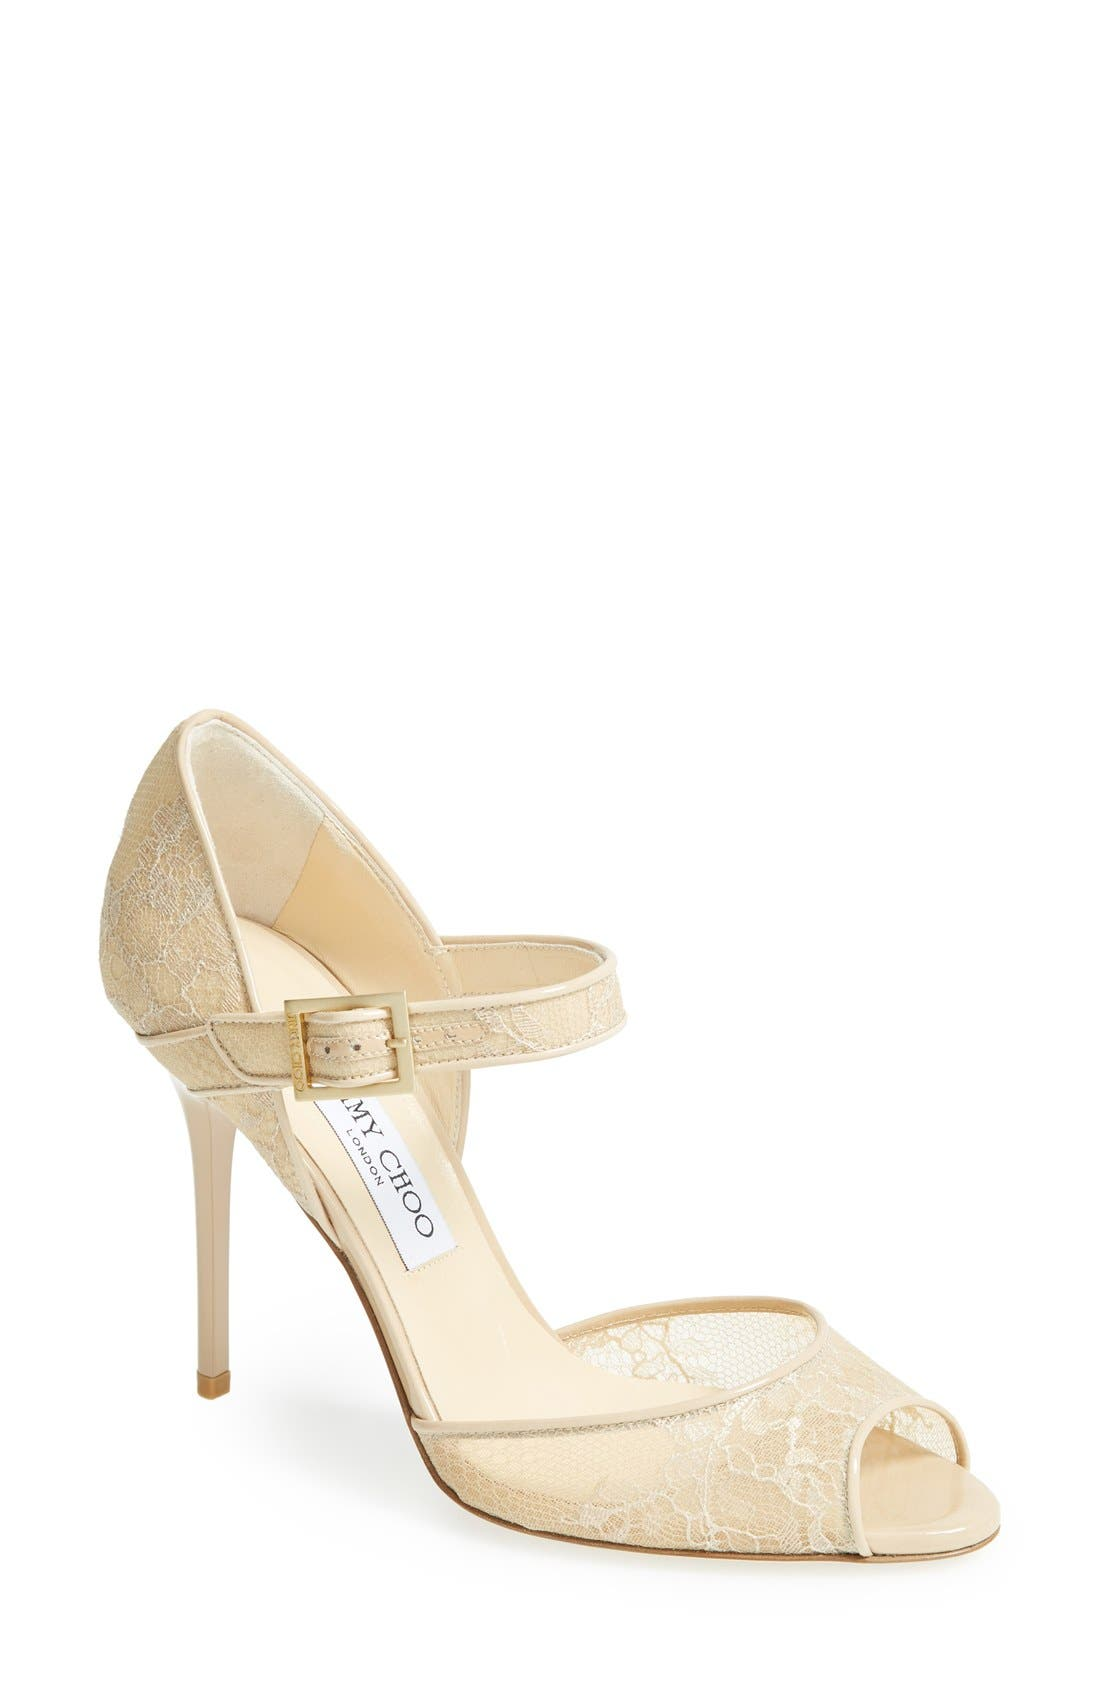 Alternate Image 1 Selected - Jimmy Choo 'Lace' Pump (Women)